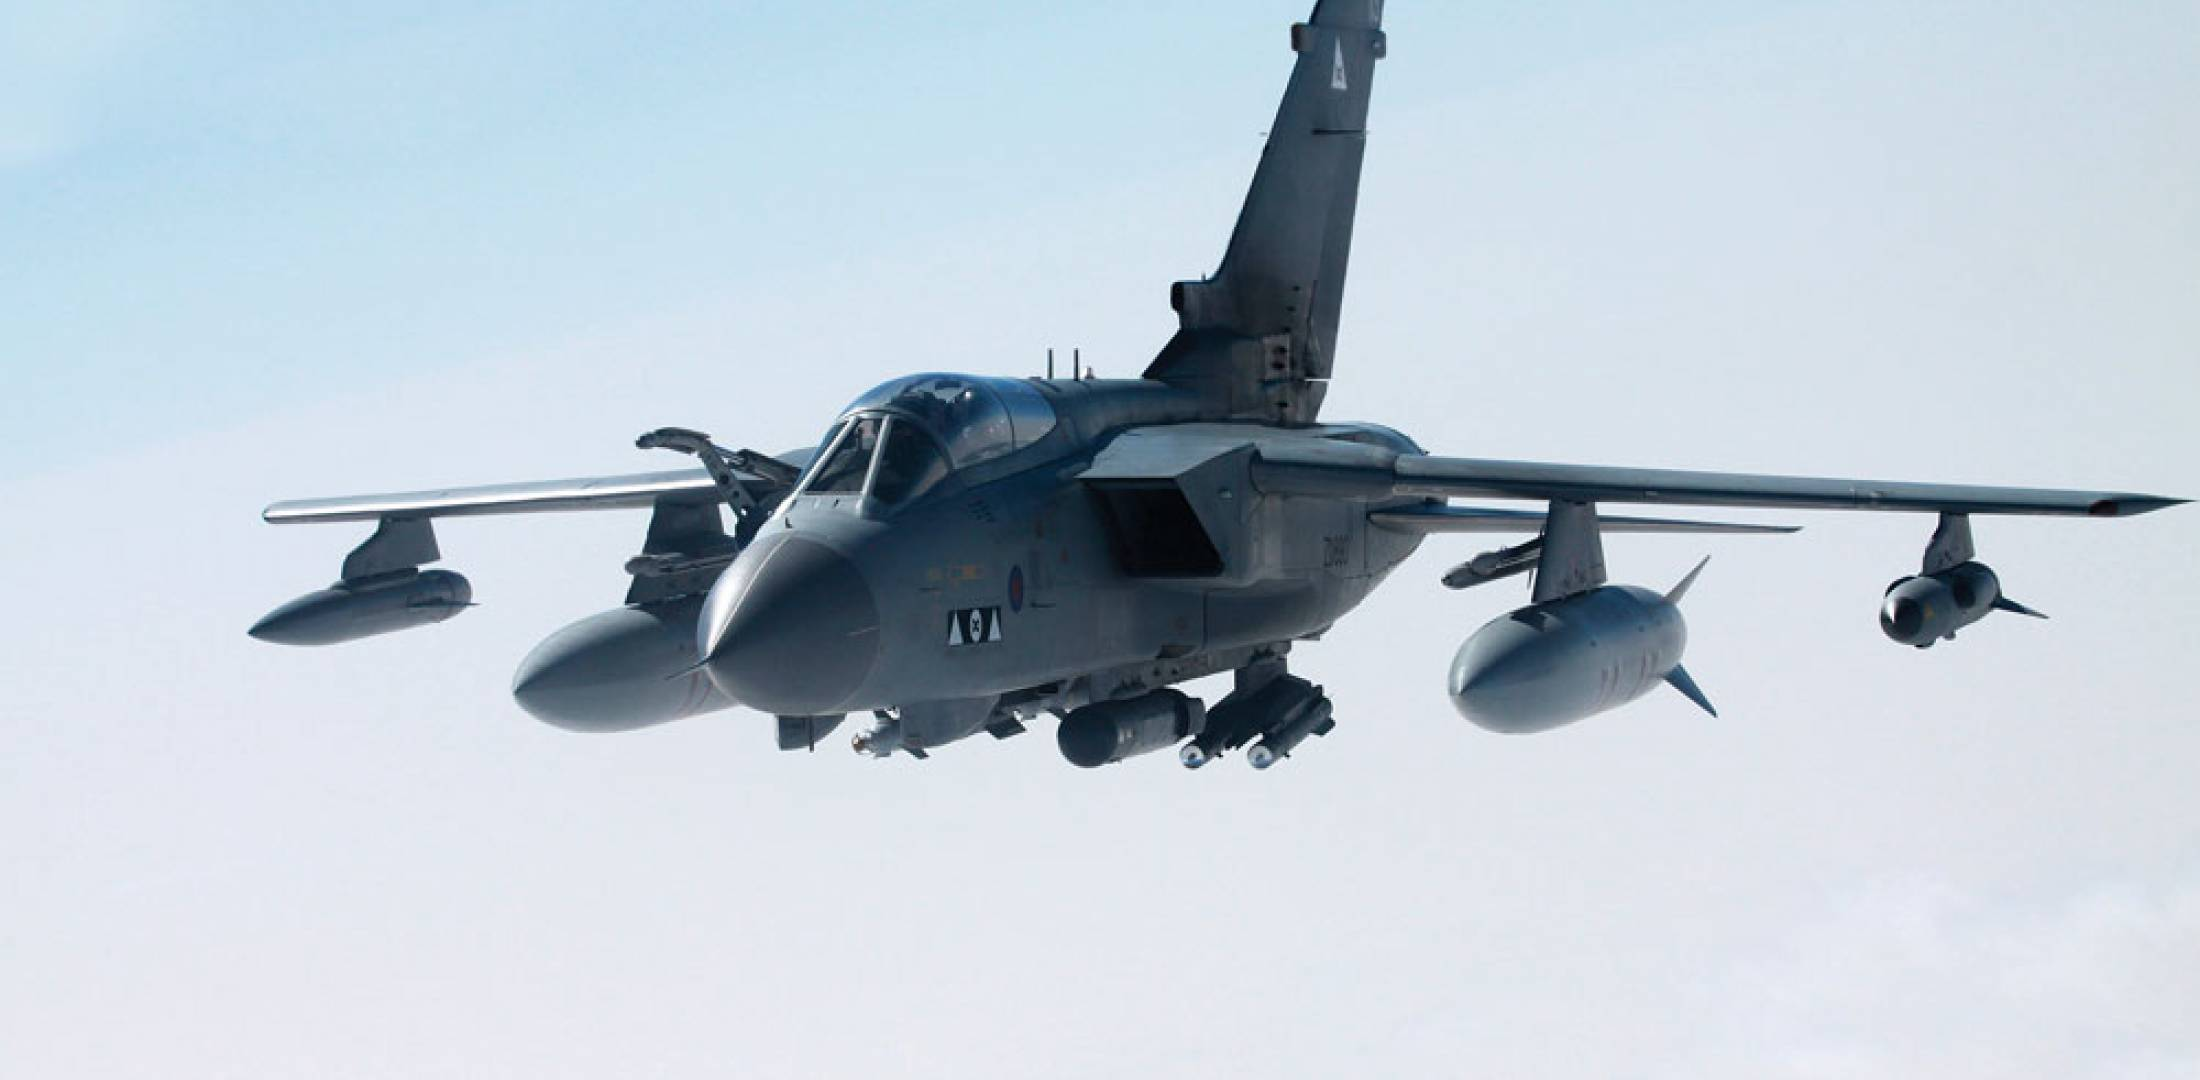 An RAF Tornado carries a pair of  Dual-Mode Brimstone weapons on a rear fuselage station during operations over Libya. The performance of the weapon in that campaign has generated interest from the U.S.